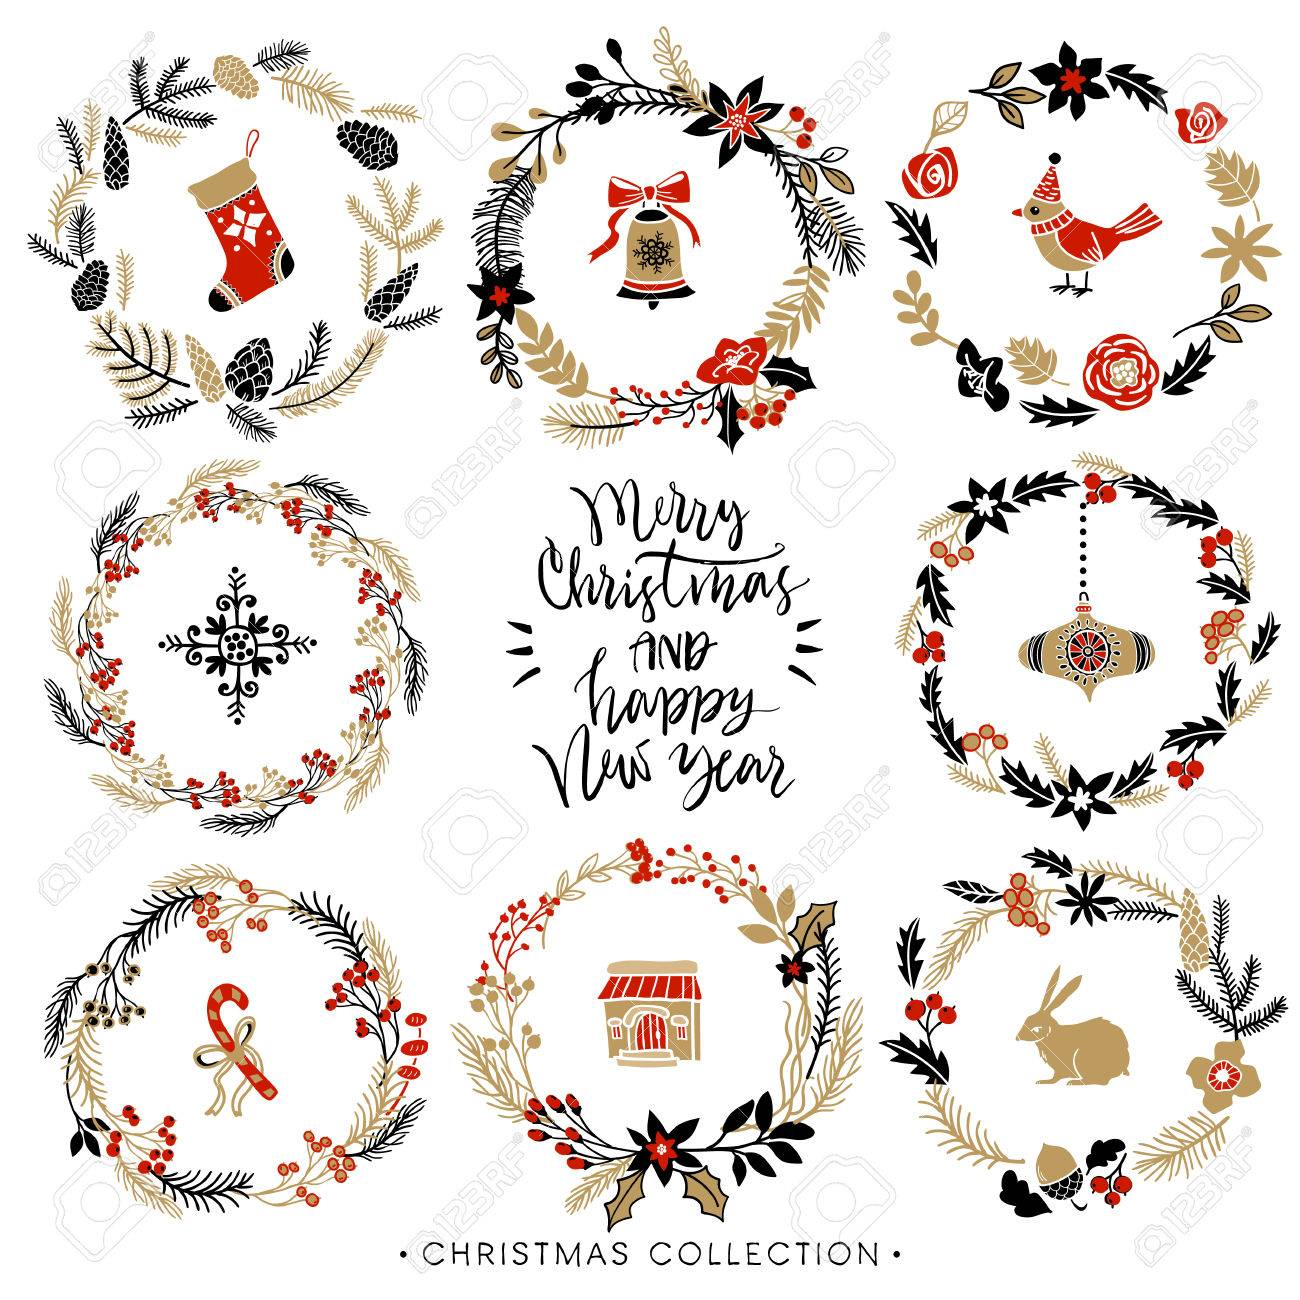 Christmas greeting wreaths with calligraphy. Hand drawn design elements. Handwritten modern brush lettering. - 49204284